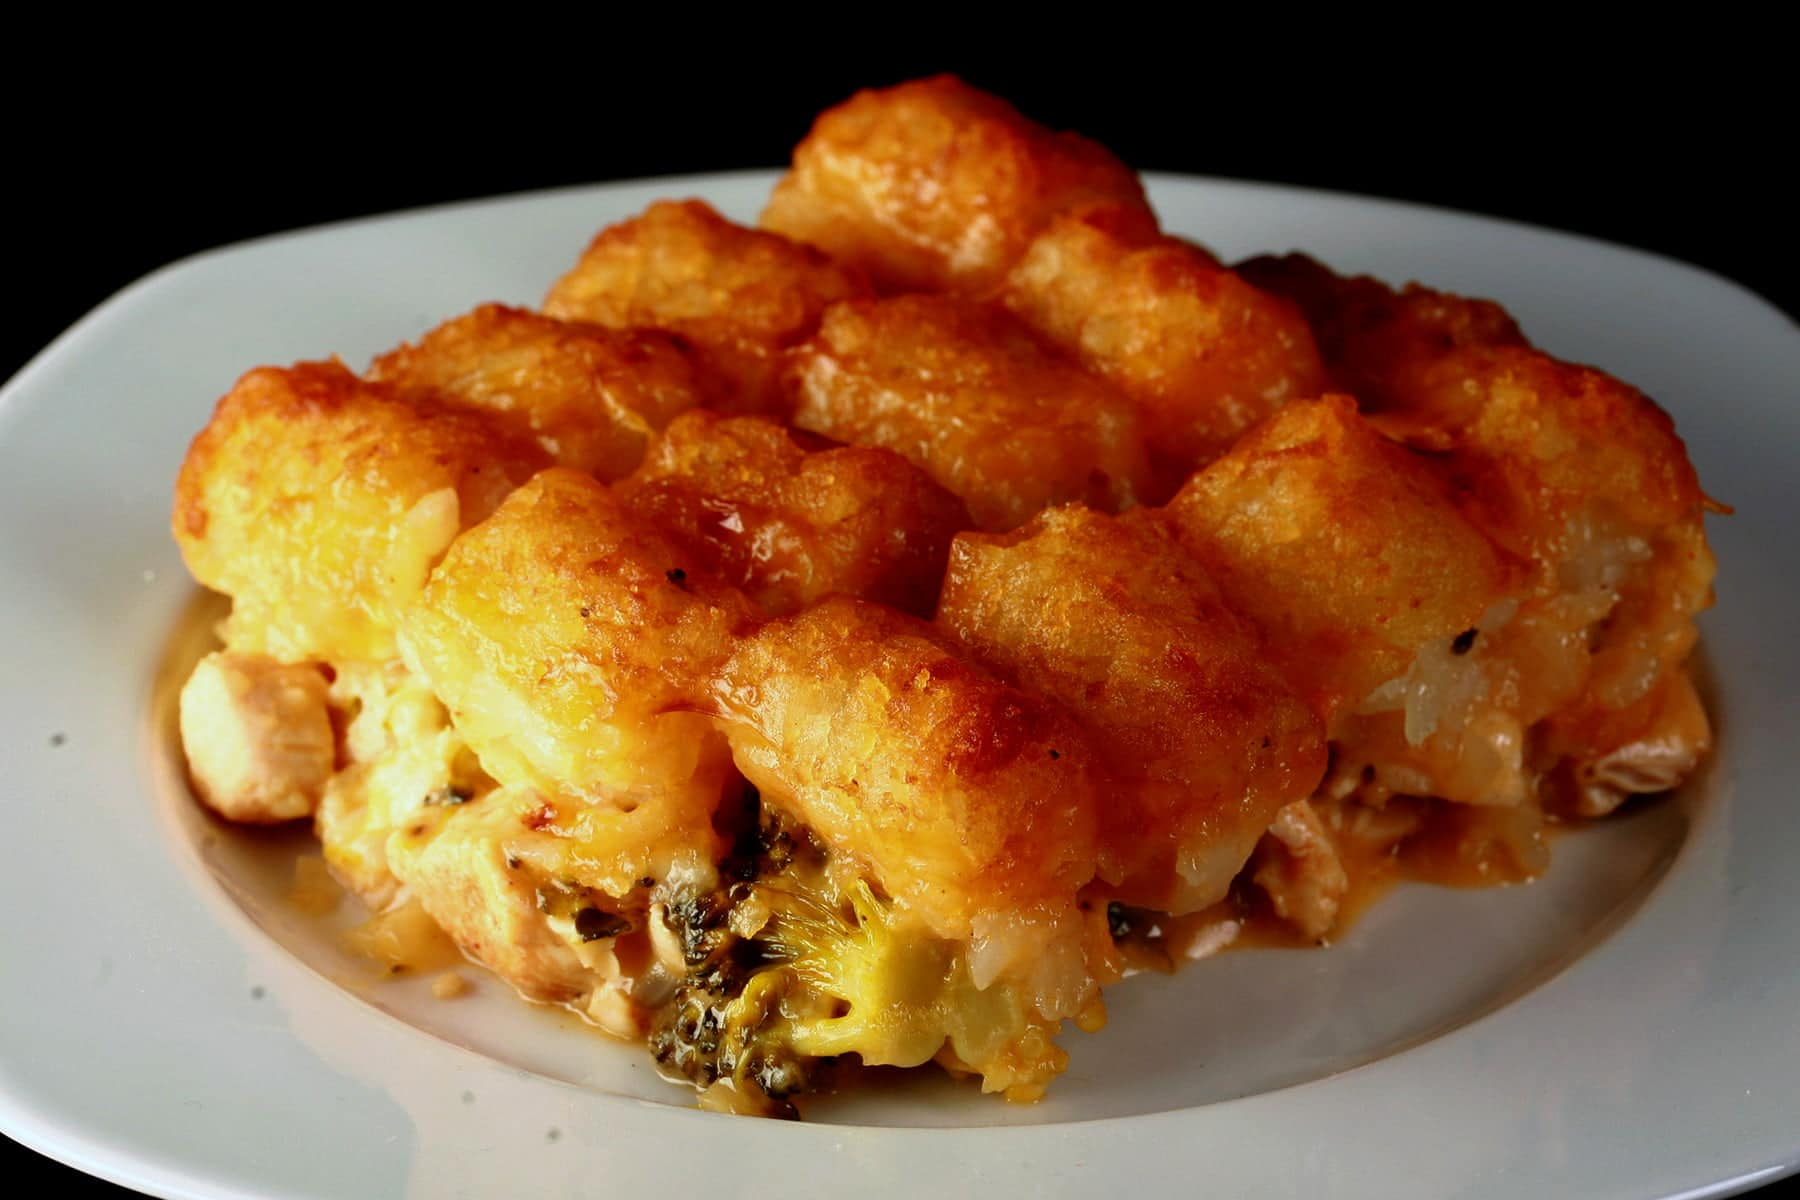 A serving of golden brown cheesy chicken broccoli tot hotdish on a white plate. Cheese and broccoli are visible in the bottom layer, covered with crispy tater tots.